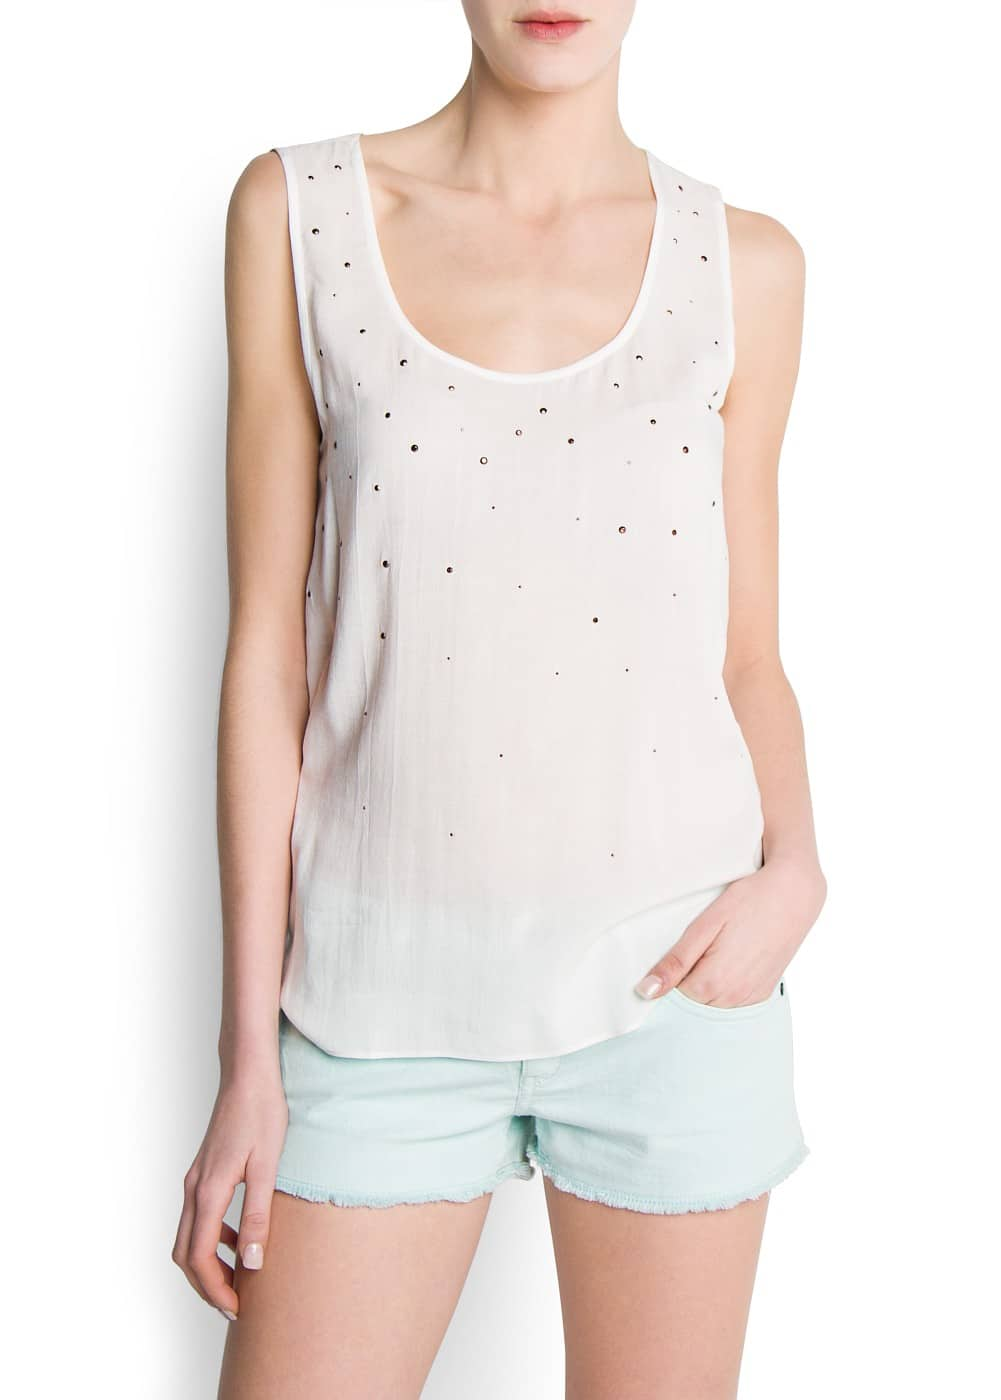 Strass embellished top